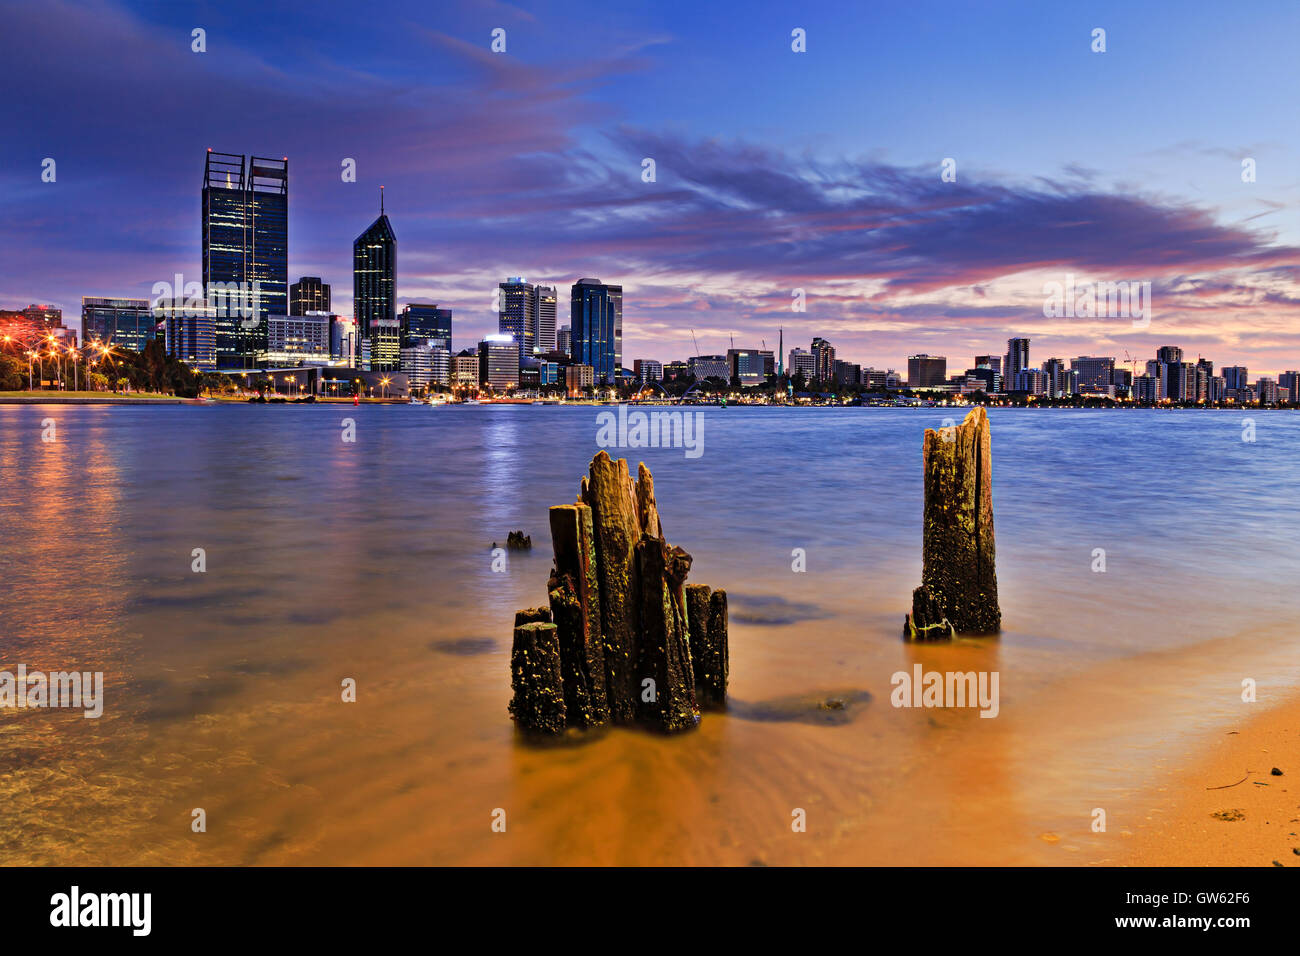 Western Australia capital city Perth at sunrise across Swan river clear waters from sandy beach to CBD. - Stock Image